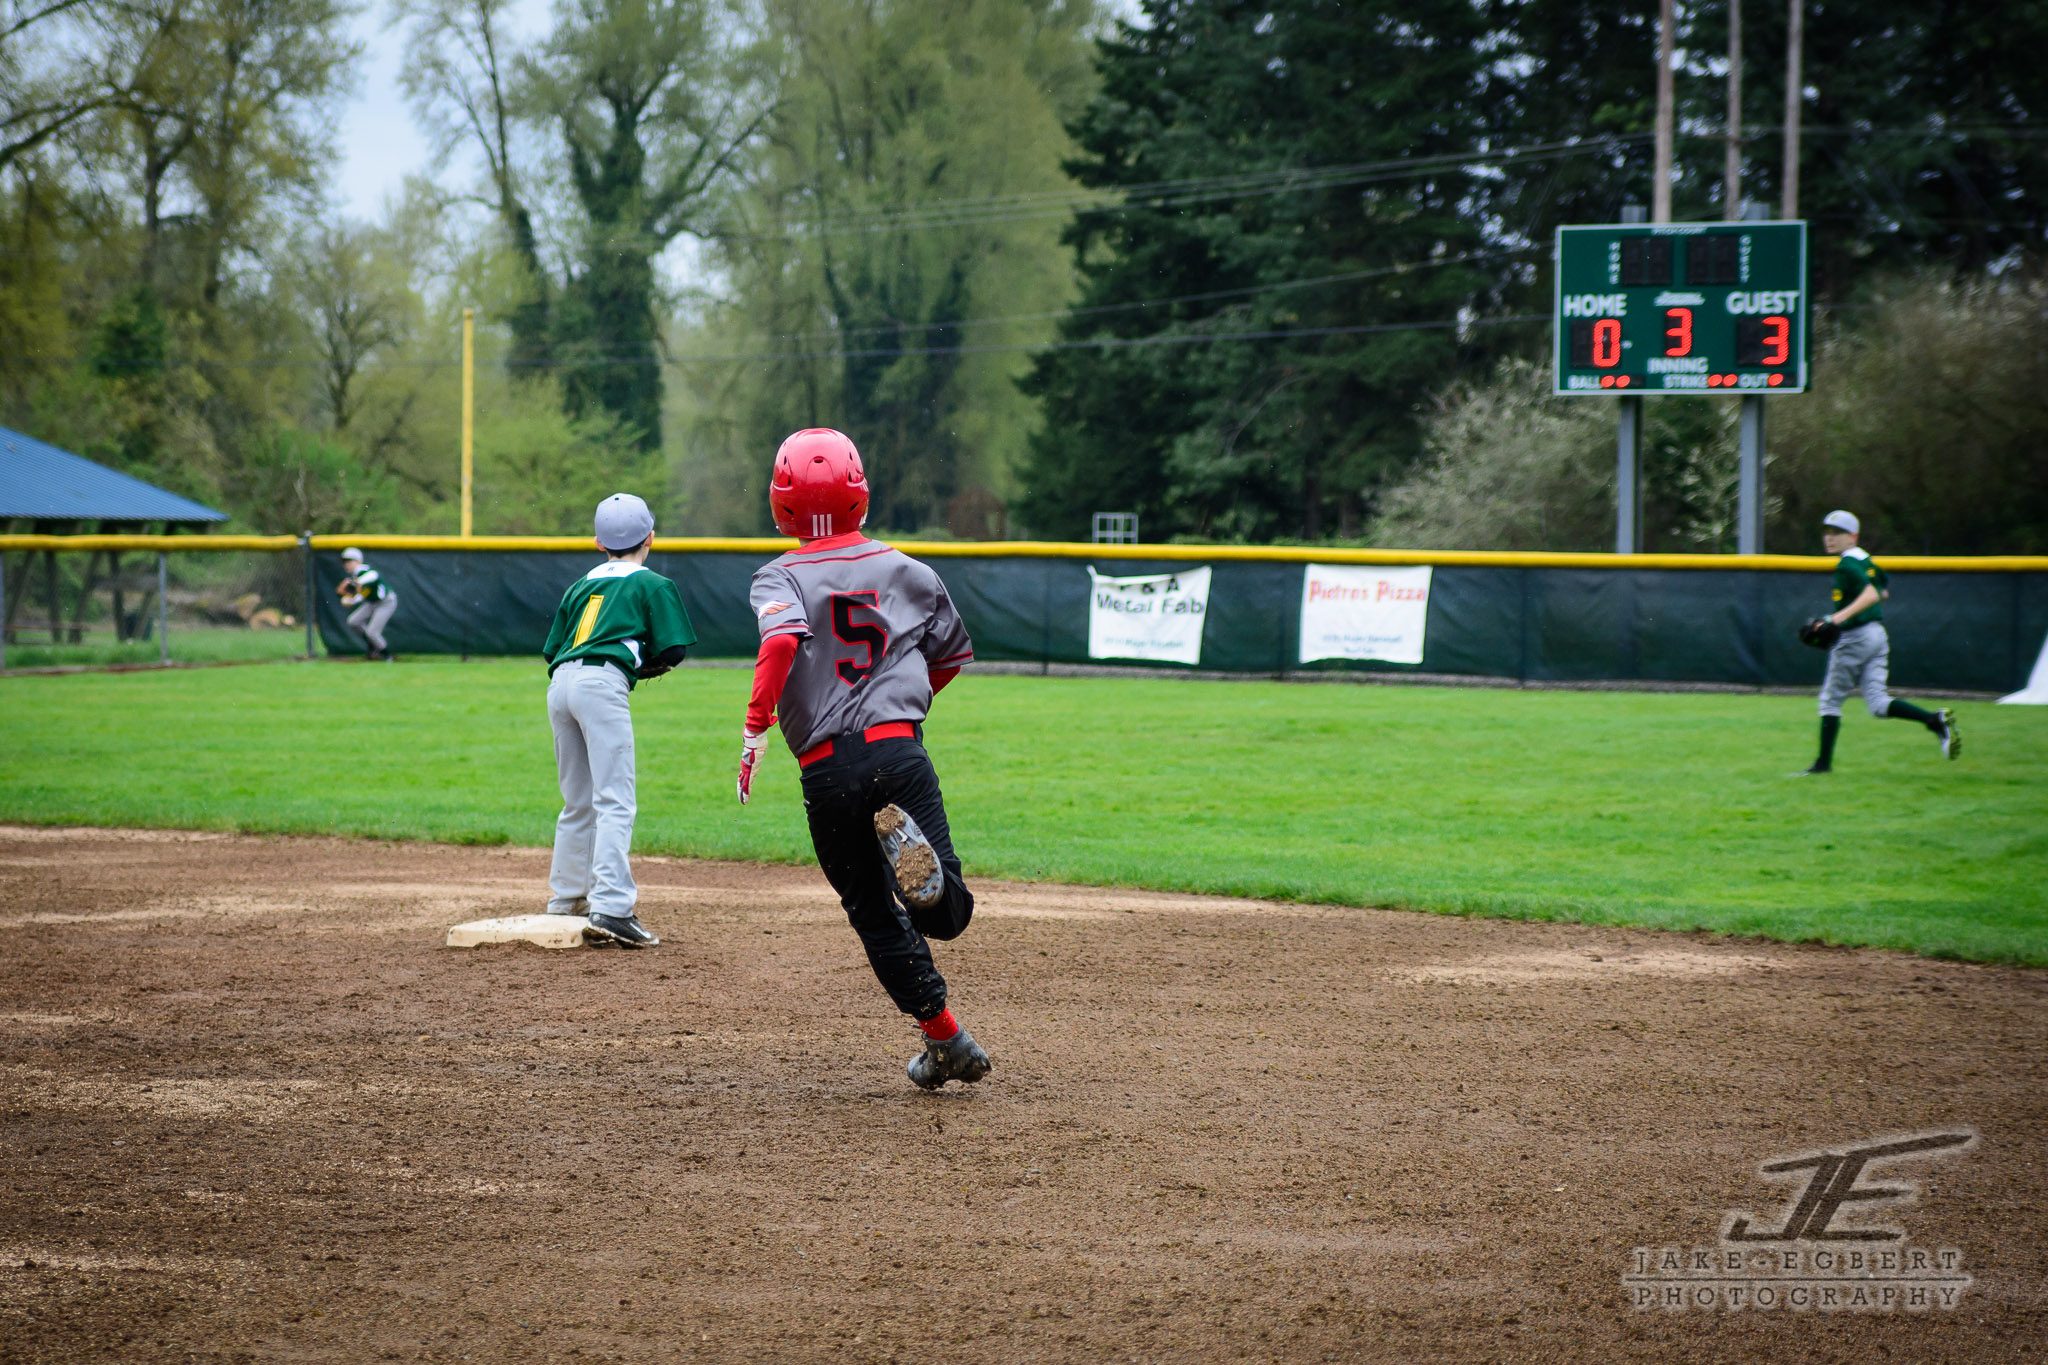 FB - 2014-04-05 - GreenSox - 19403.jpg